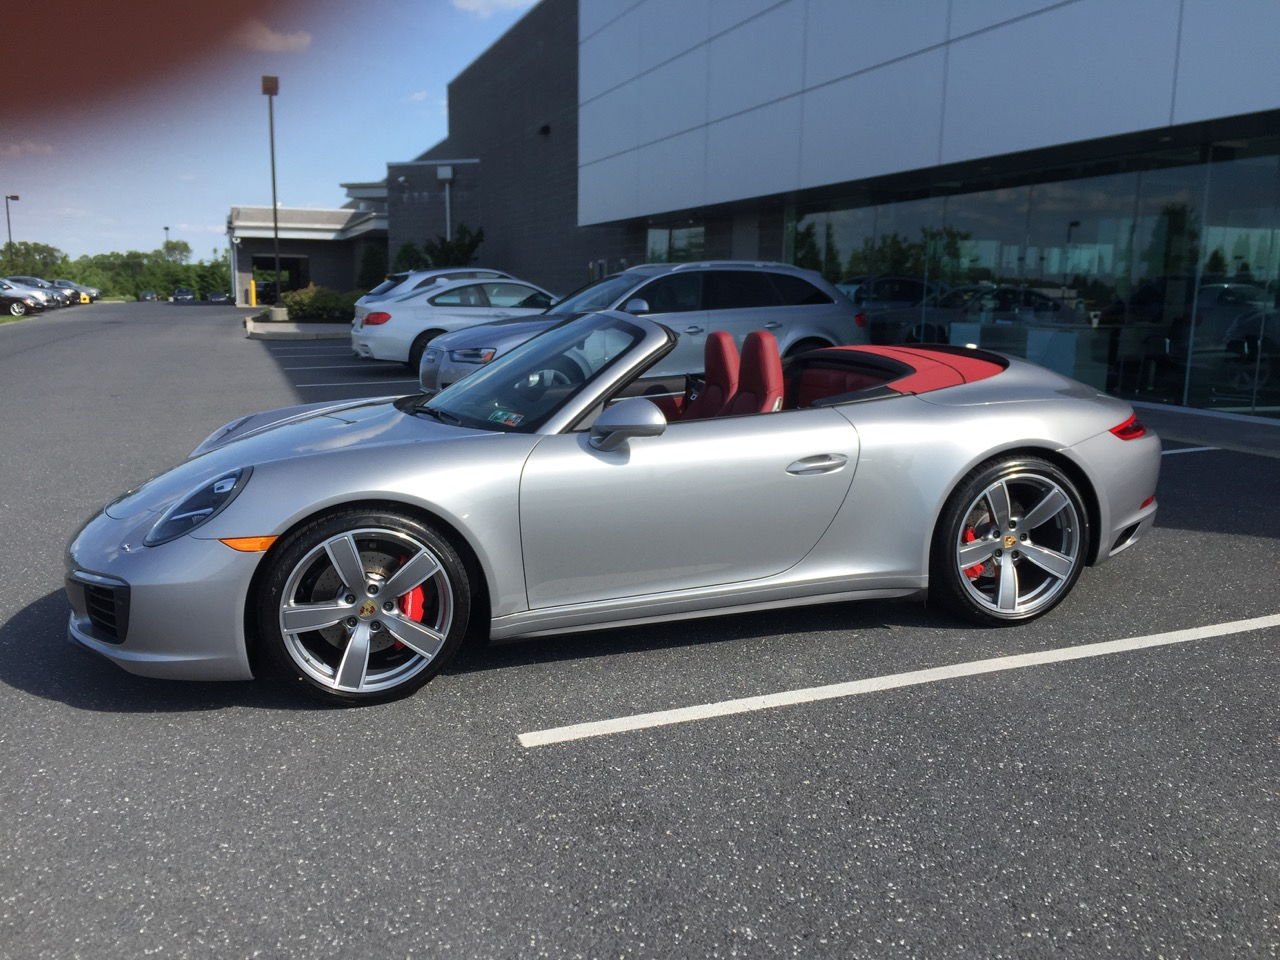 Gt Silver 991 2 Has Arrived Rennlist Discussion Forums